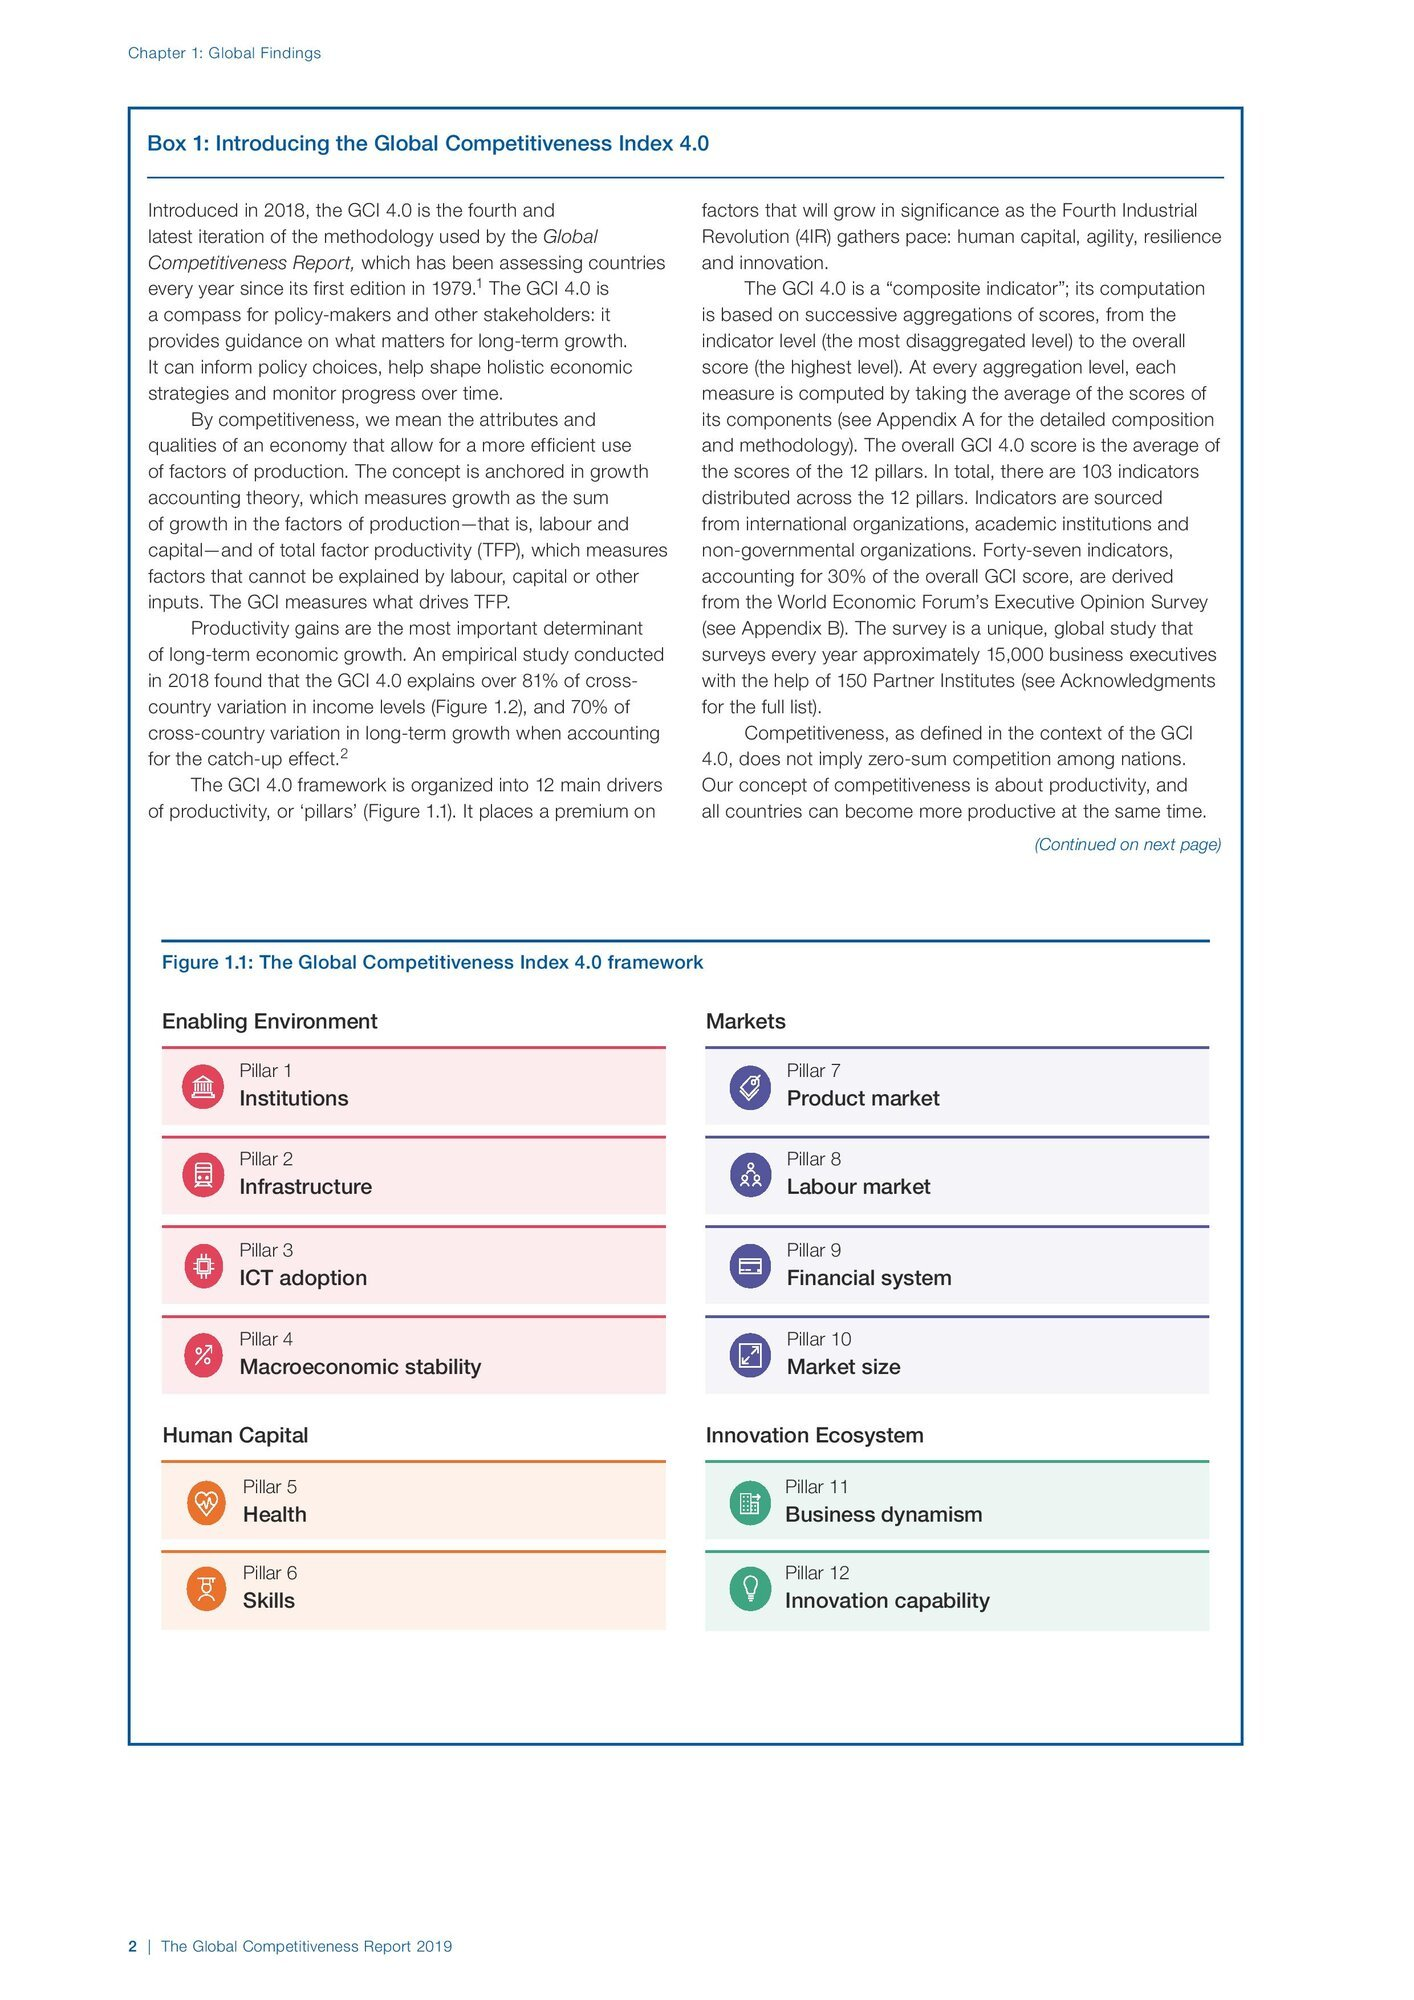 WEF_TheGlobalCompetitivenessReport2019-page-018.jpg